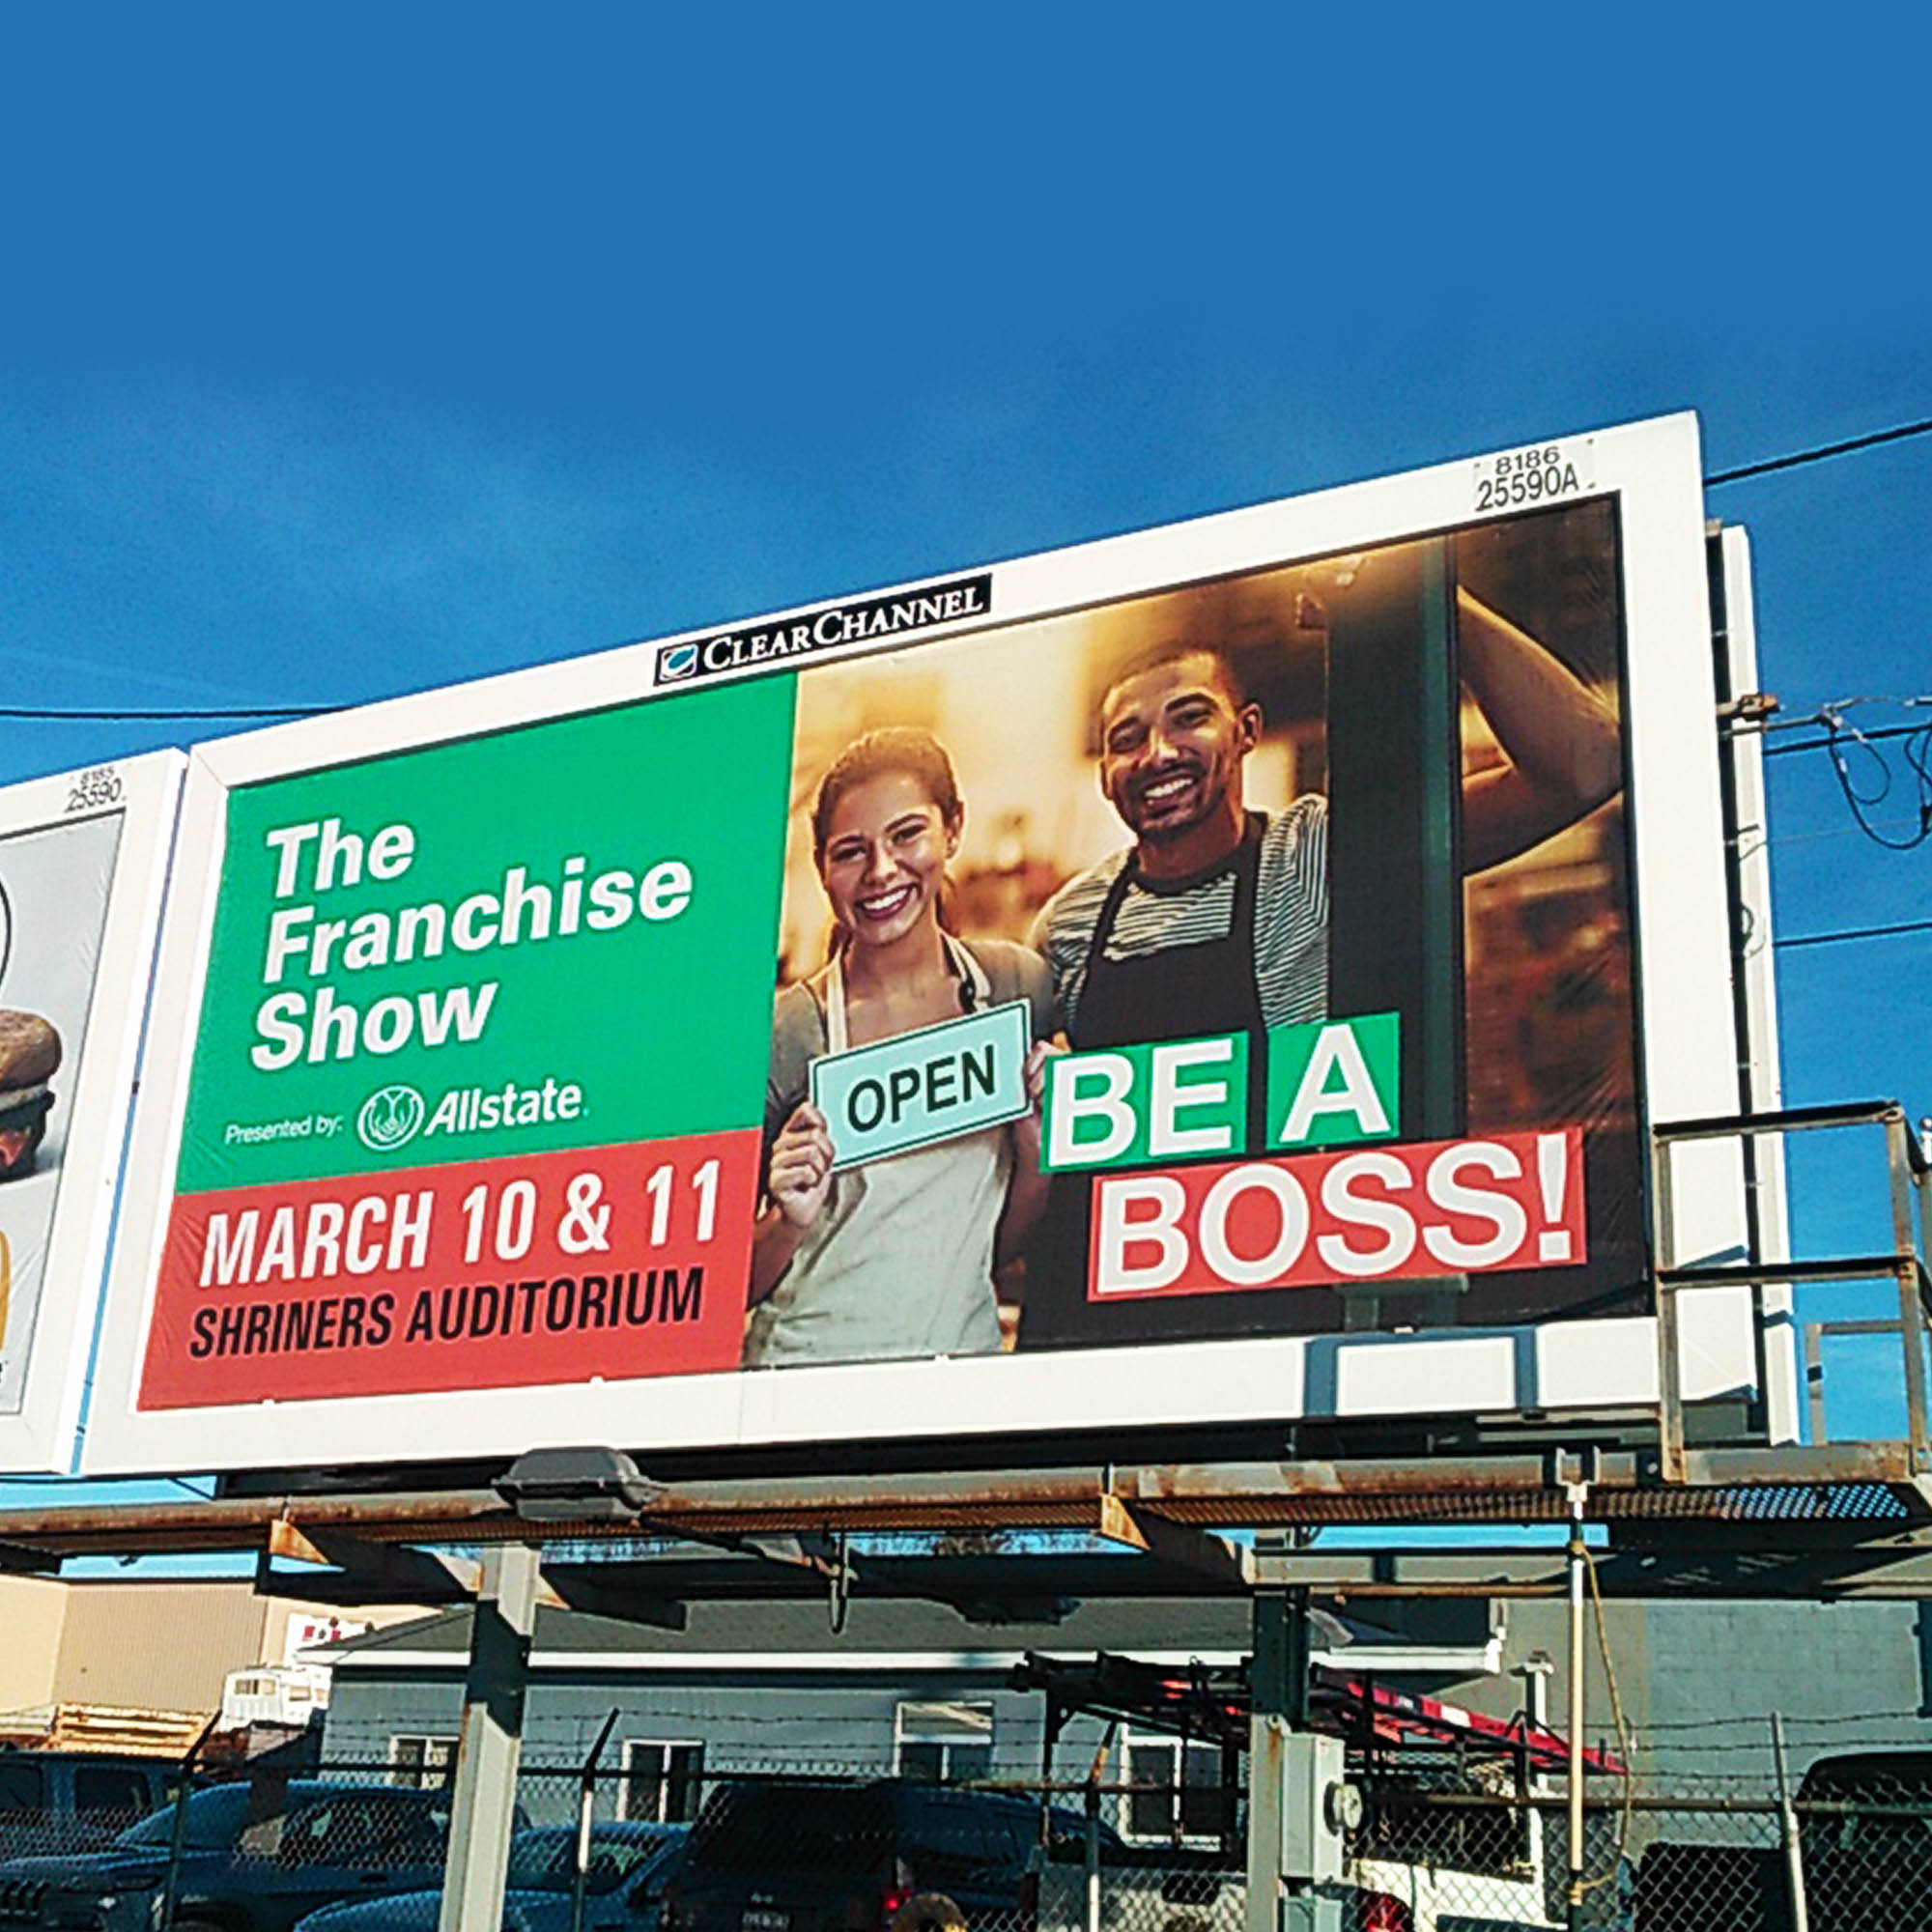 The Franchise Show - Outdoor Billboards